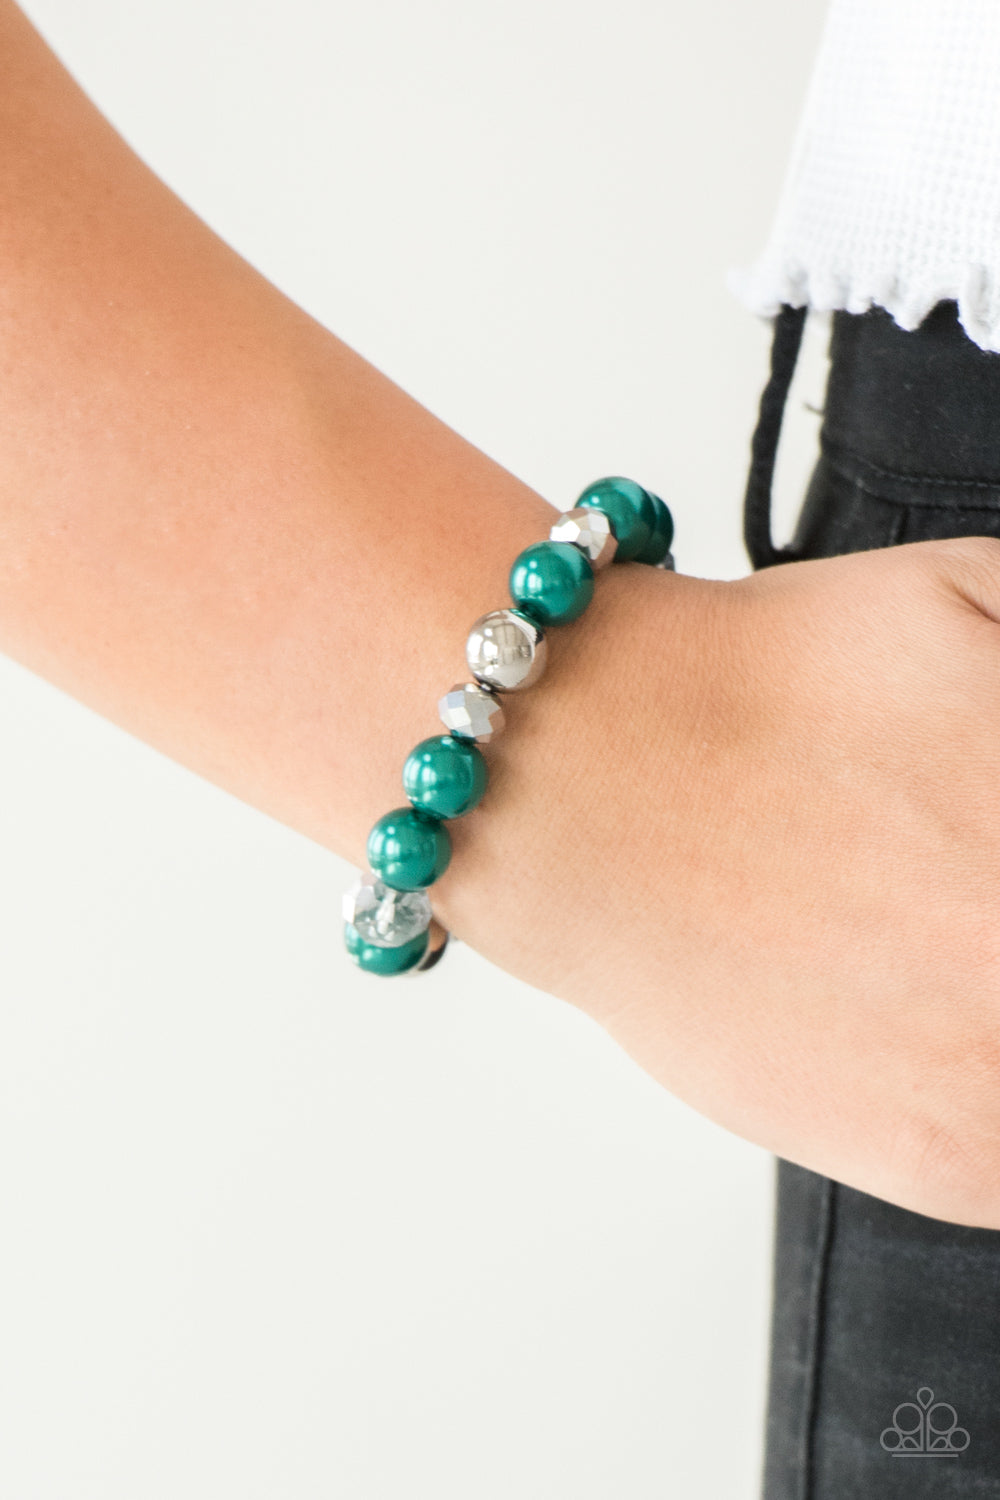 Paparazzi - Very VIP - Green Bracelet - Classy Jewels by Linda